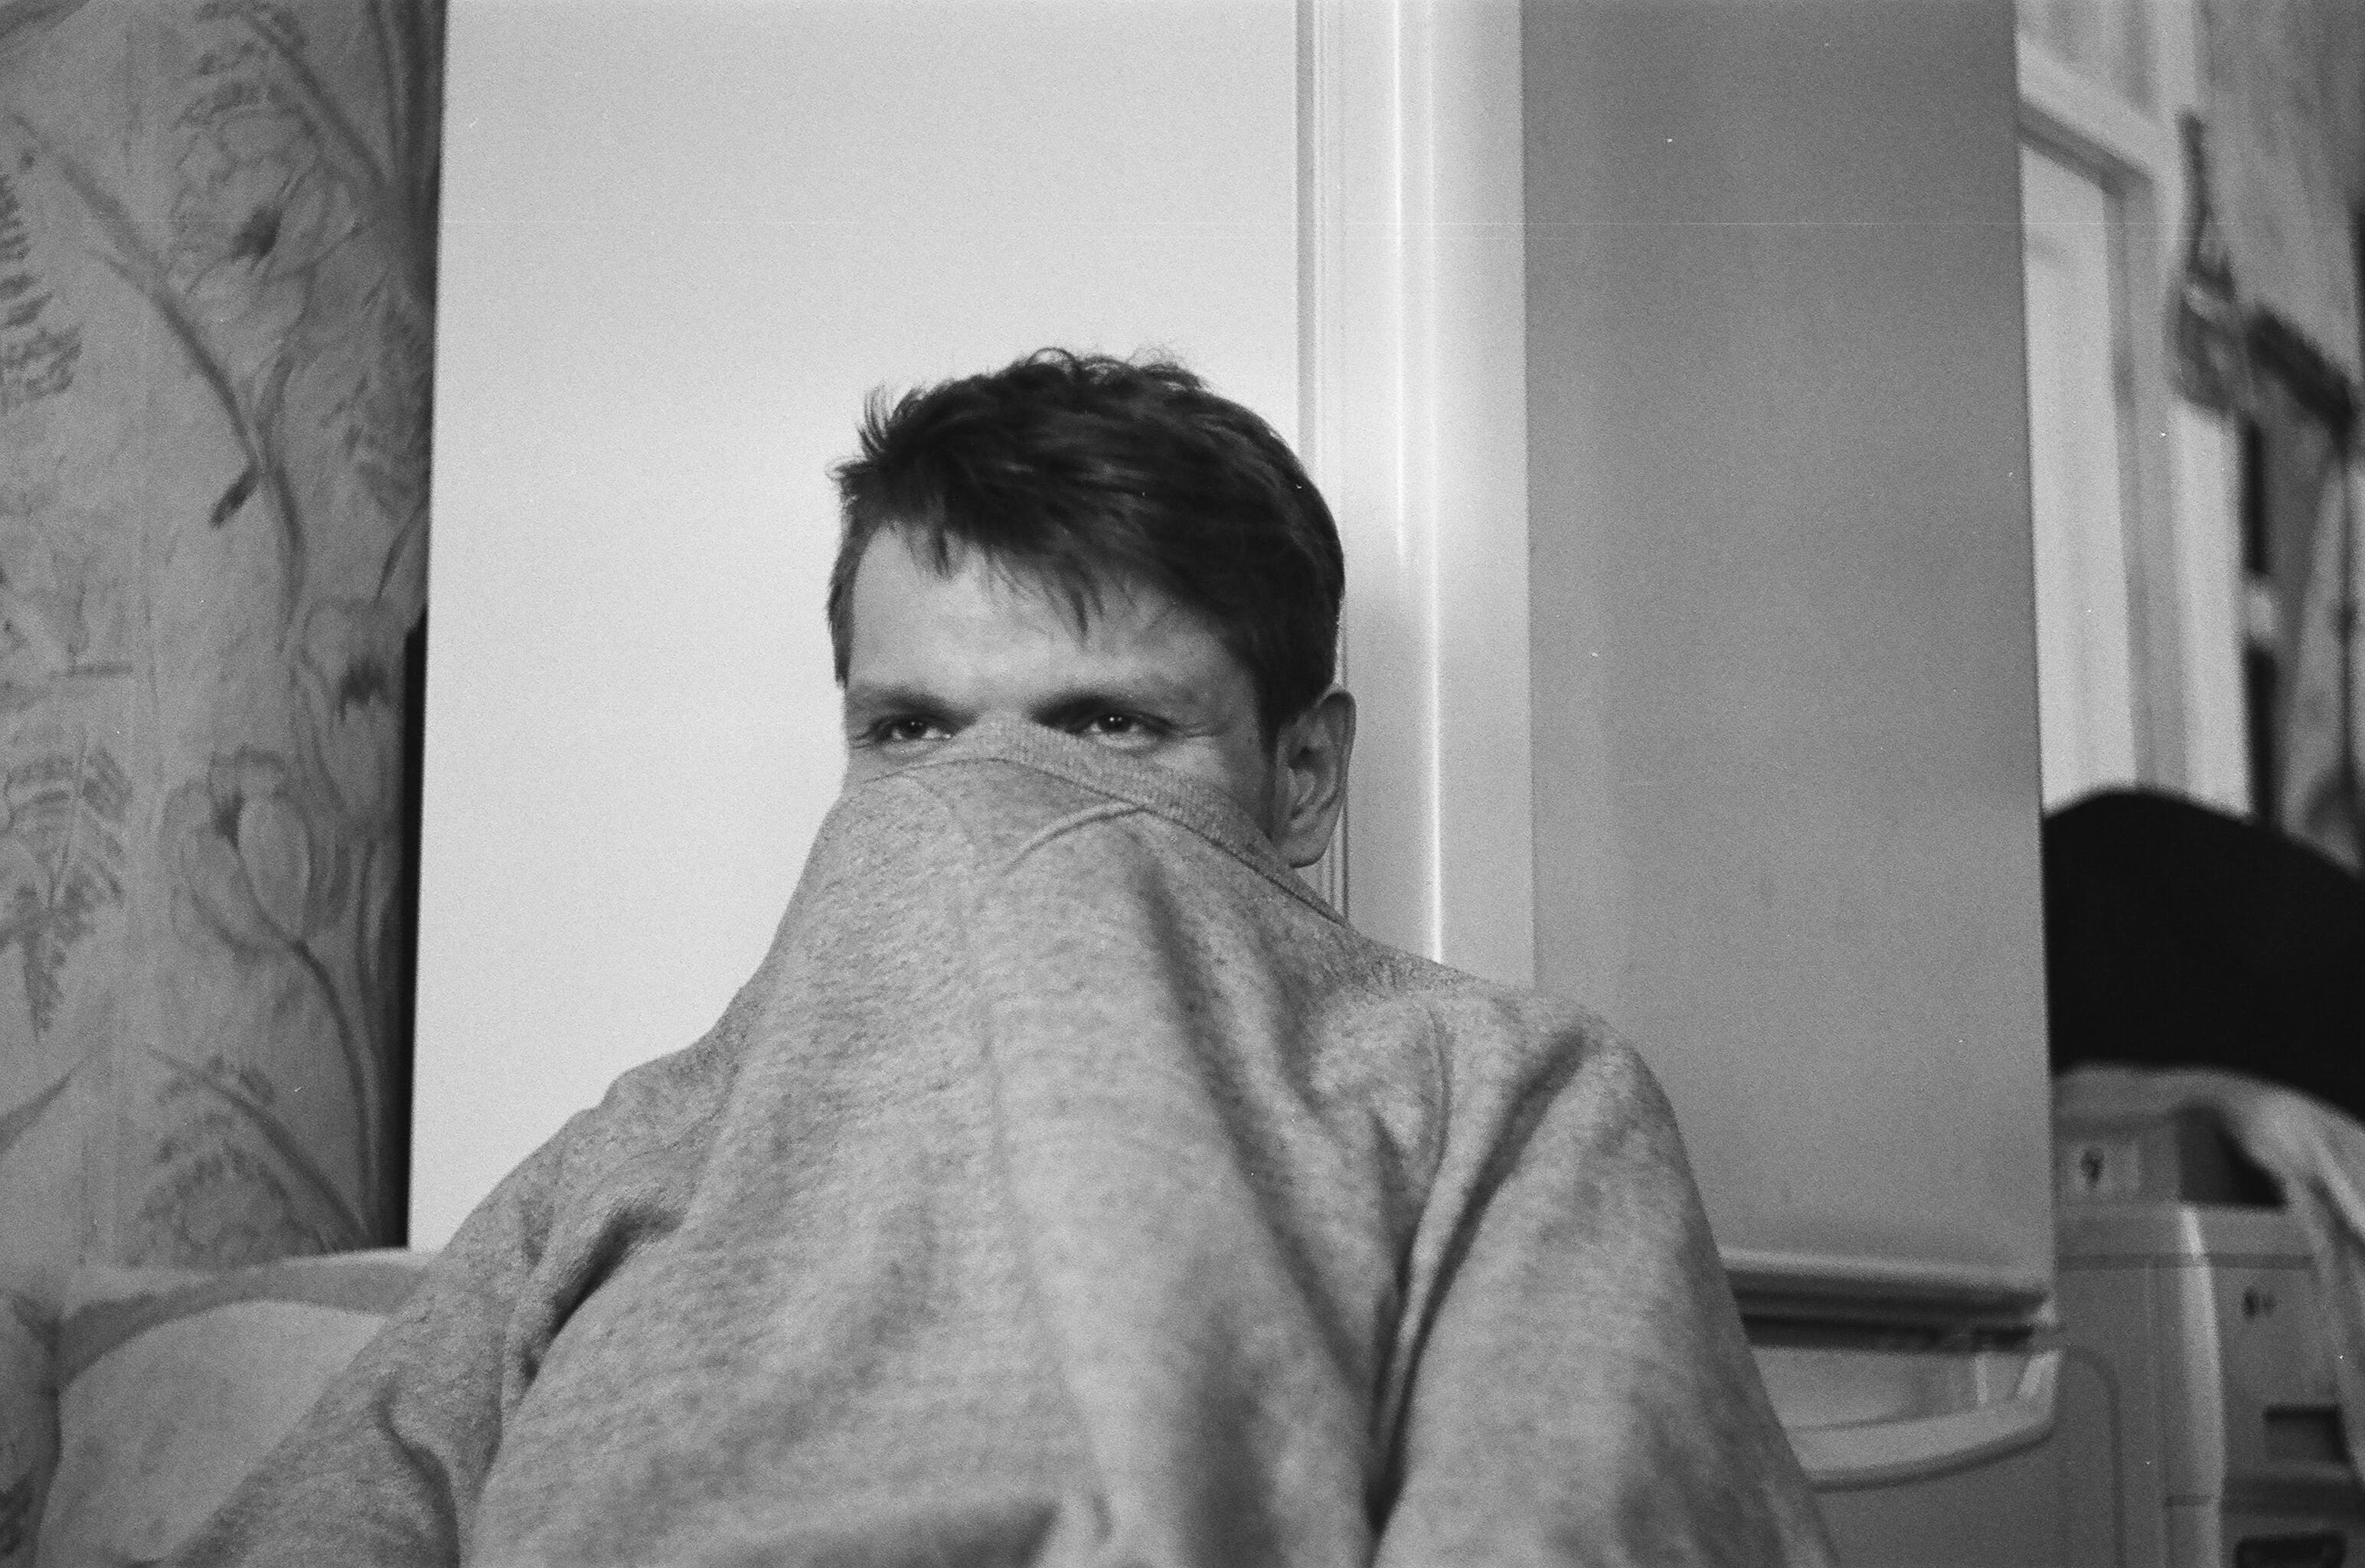 Grayscale Photo of Man Leaning on Refrigerator